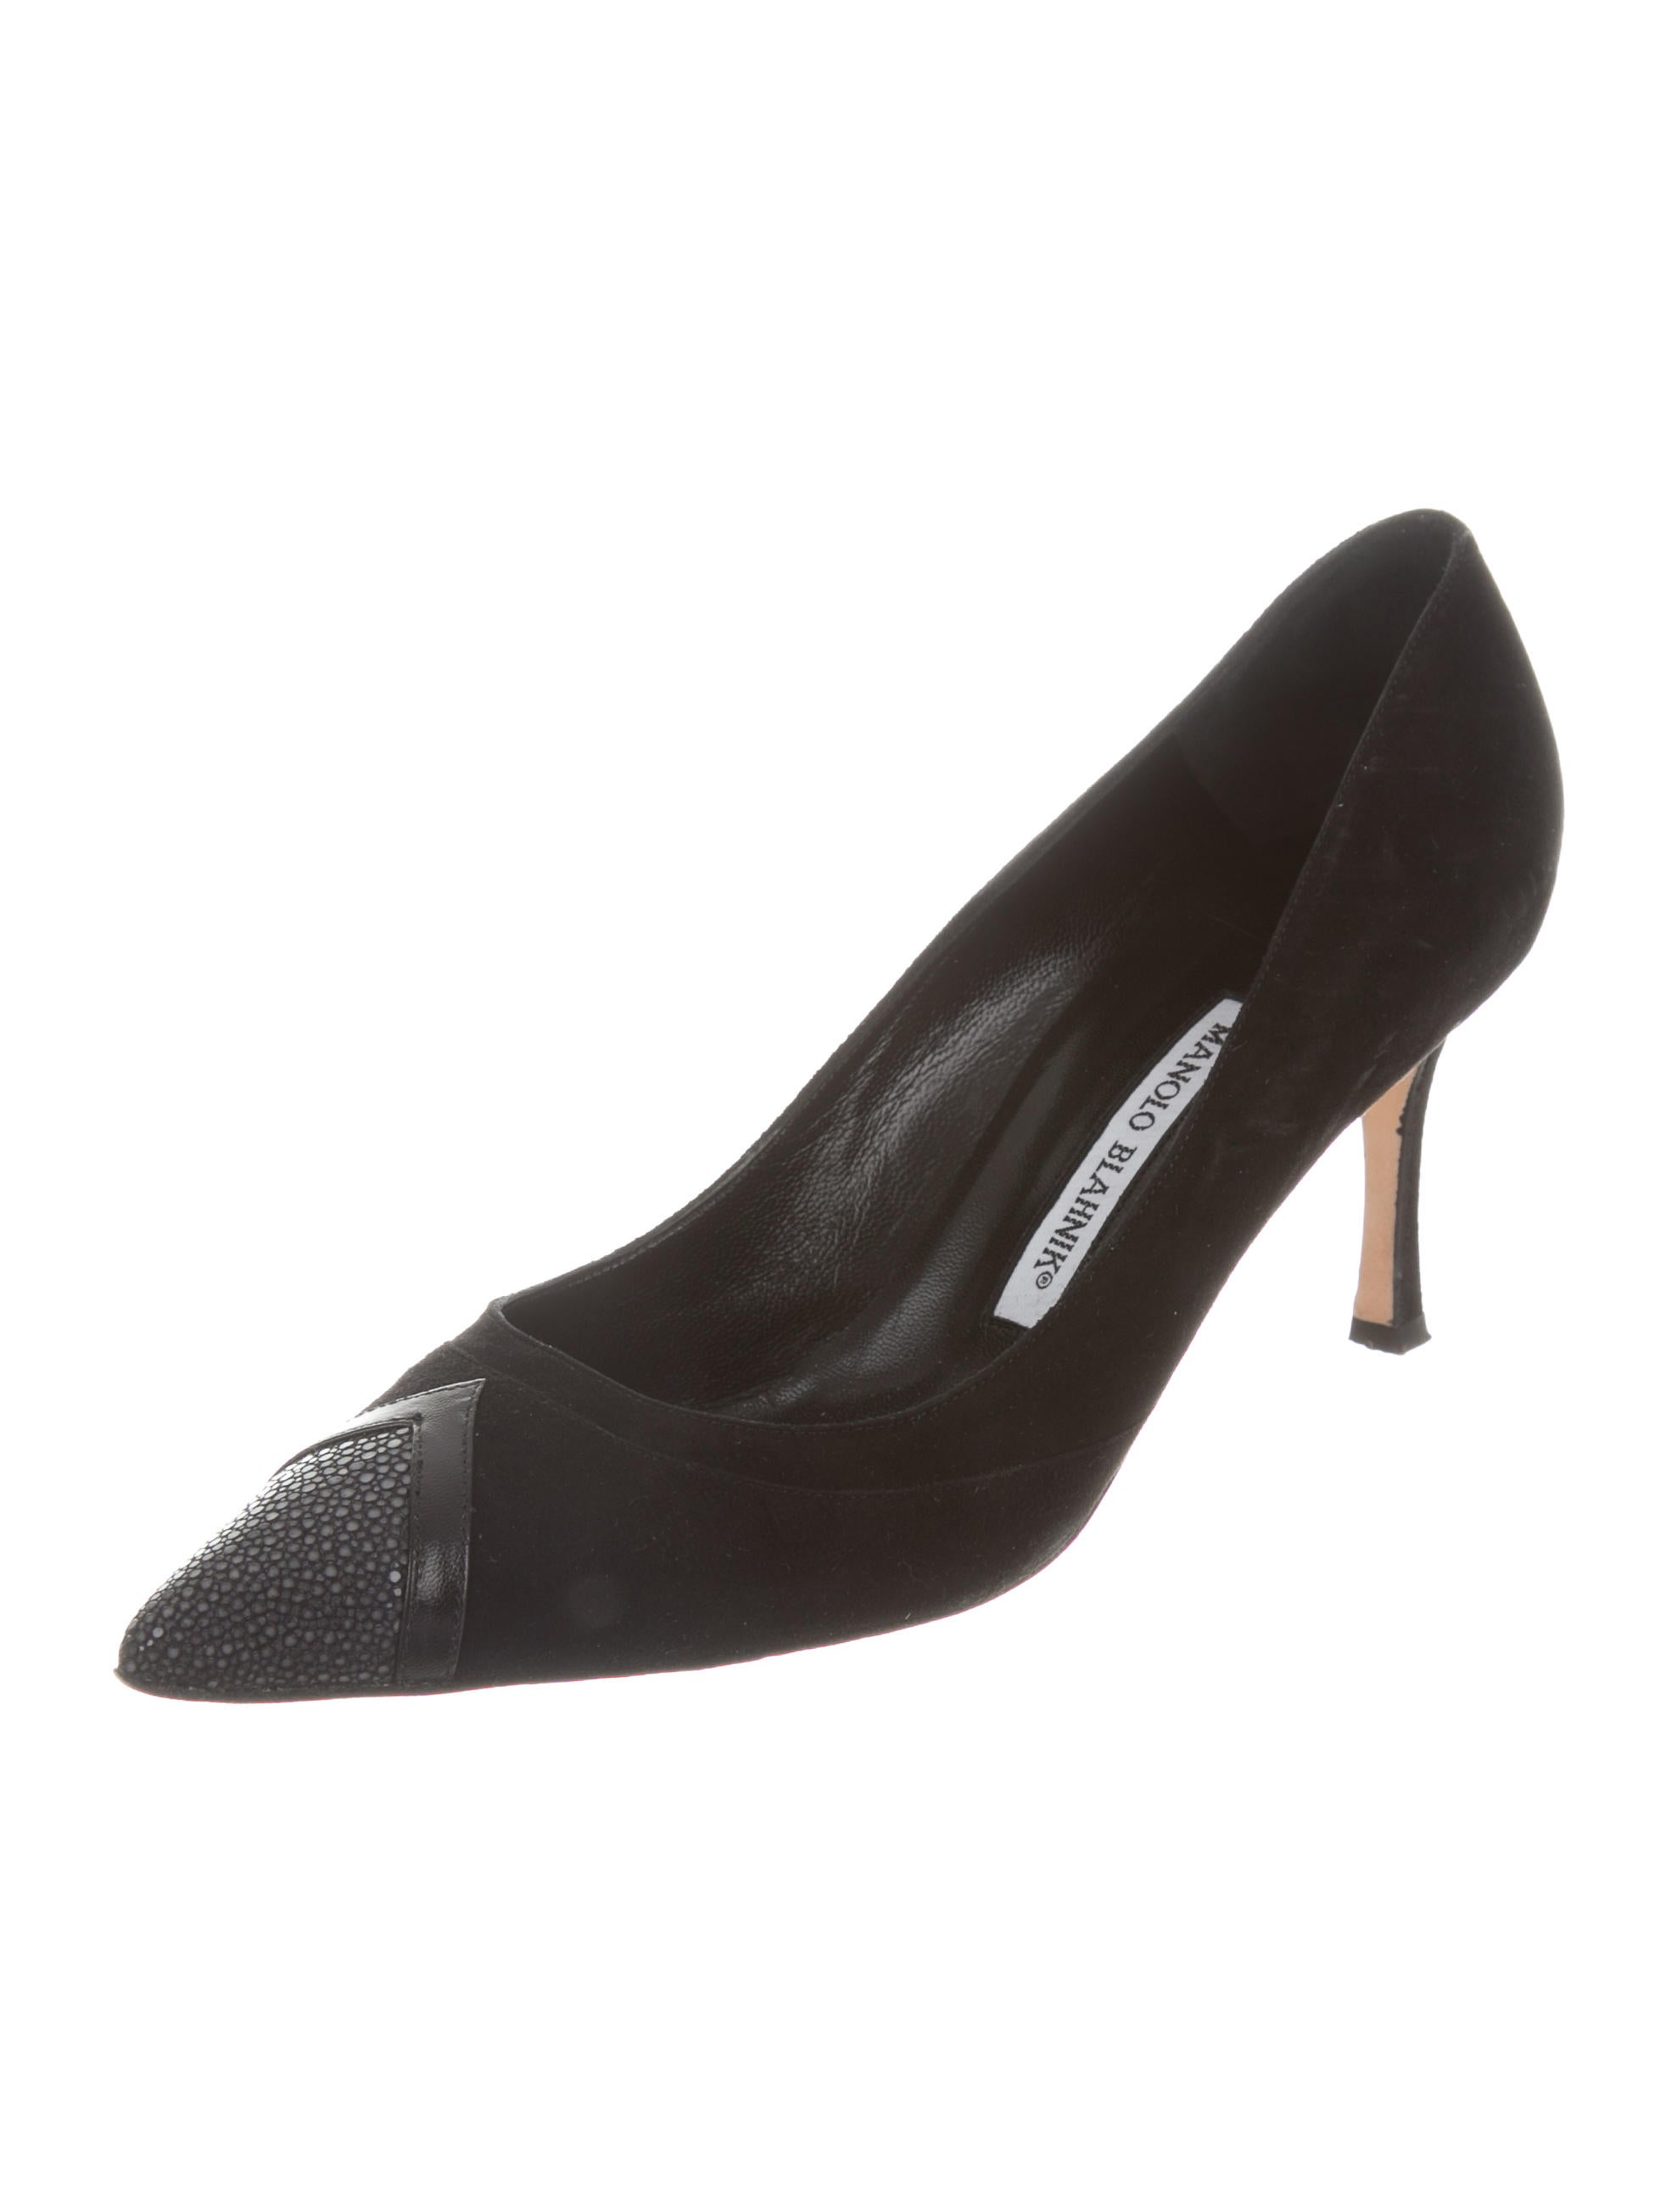 Manolo Blahnik Stingray-Trimmed Pointed-Toe Pumps discount largest supplier AlolA